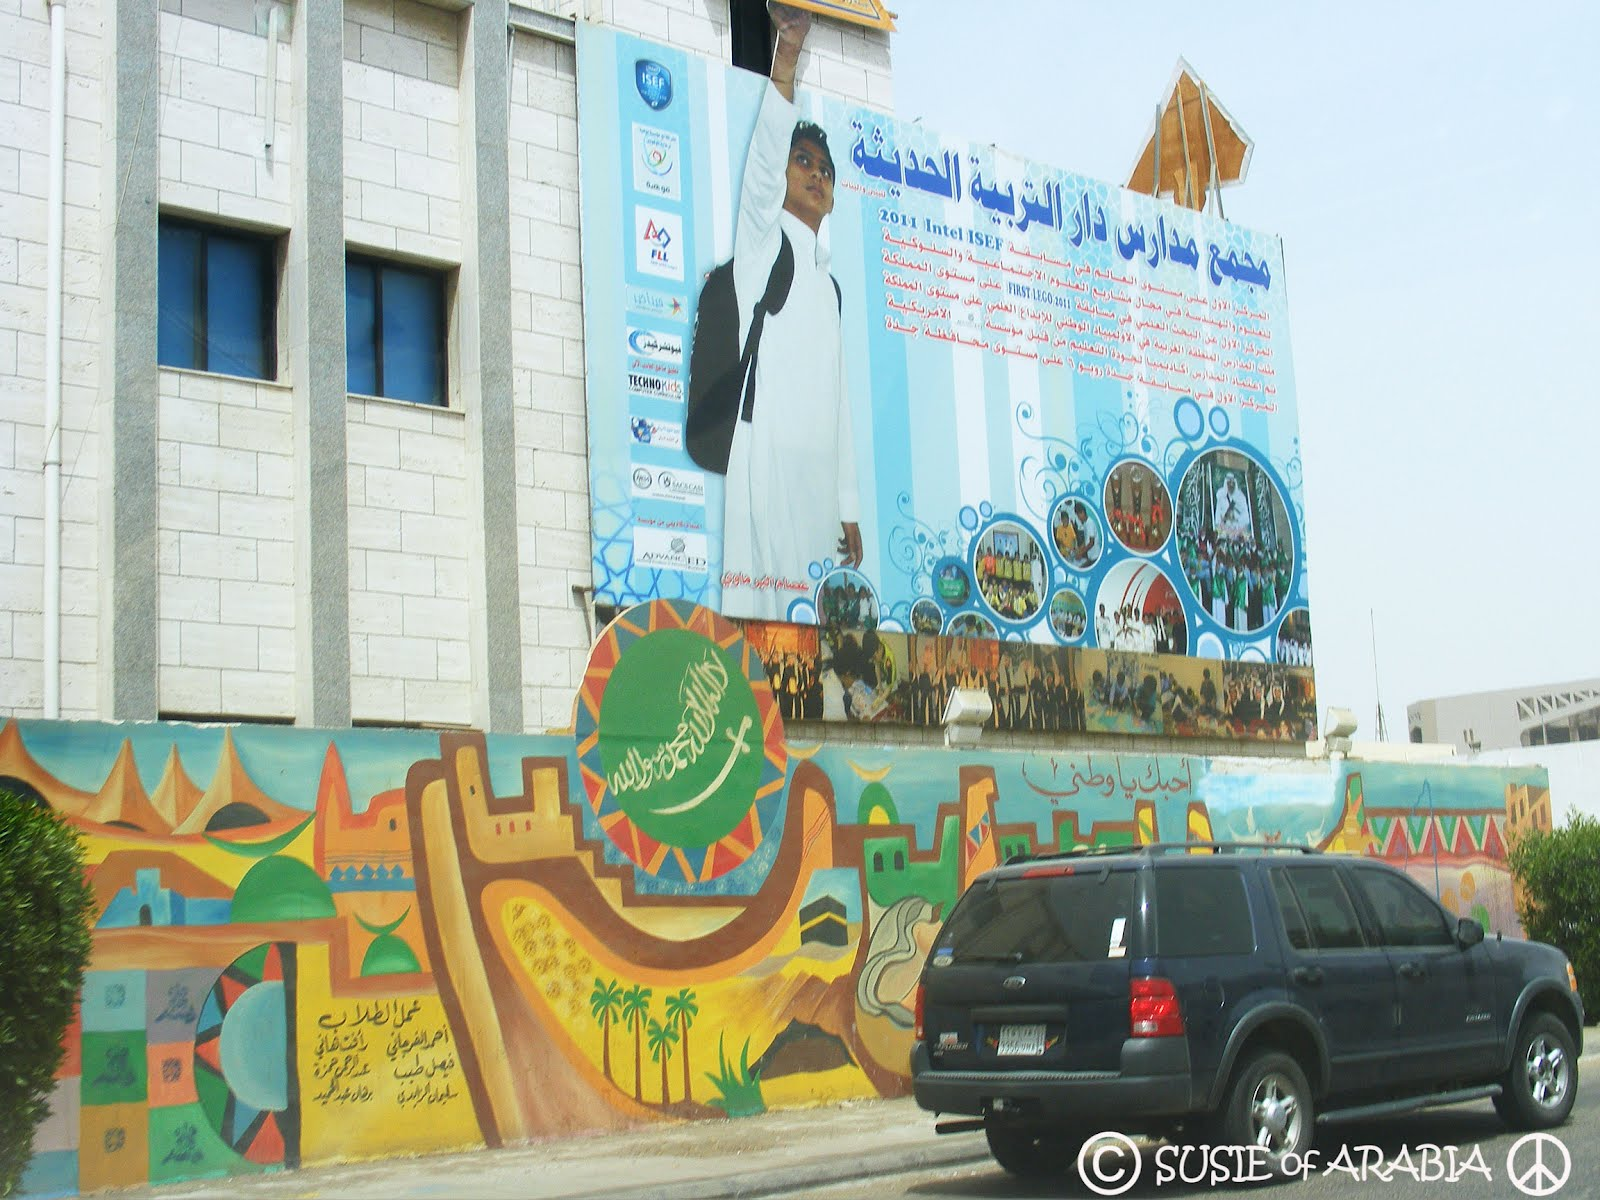 jeddah daily photo school wall mural mural for the gym at school do on a removable board